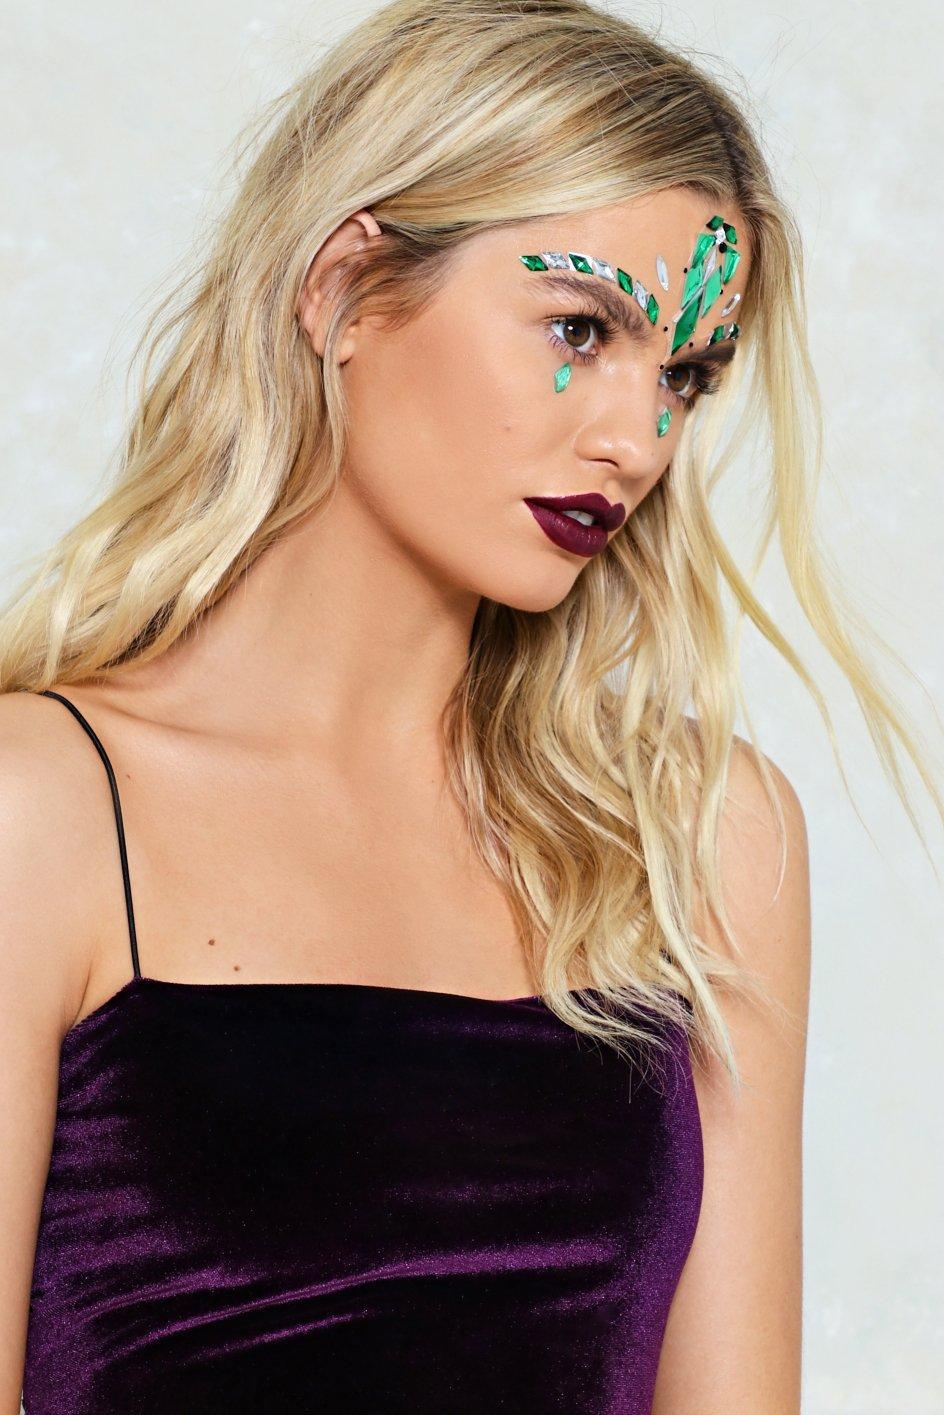 Nasty Gal Synthetic Joke's On You Face Jewels Joke's On You Face Jewels in Green